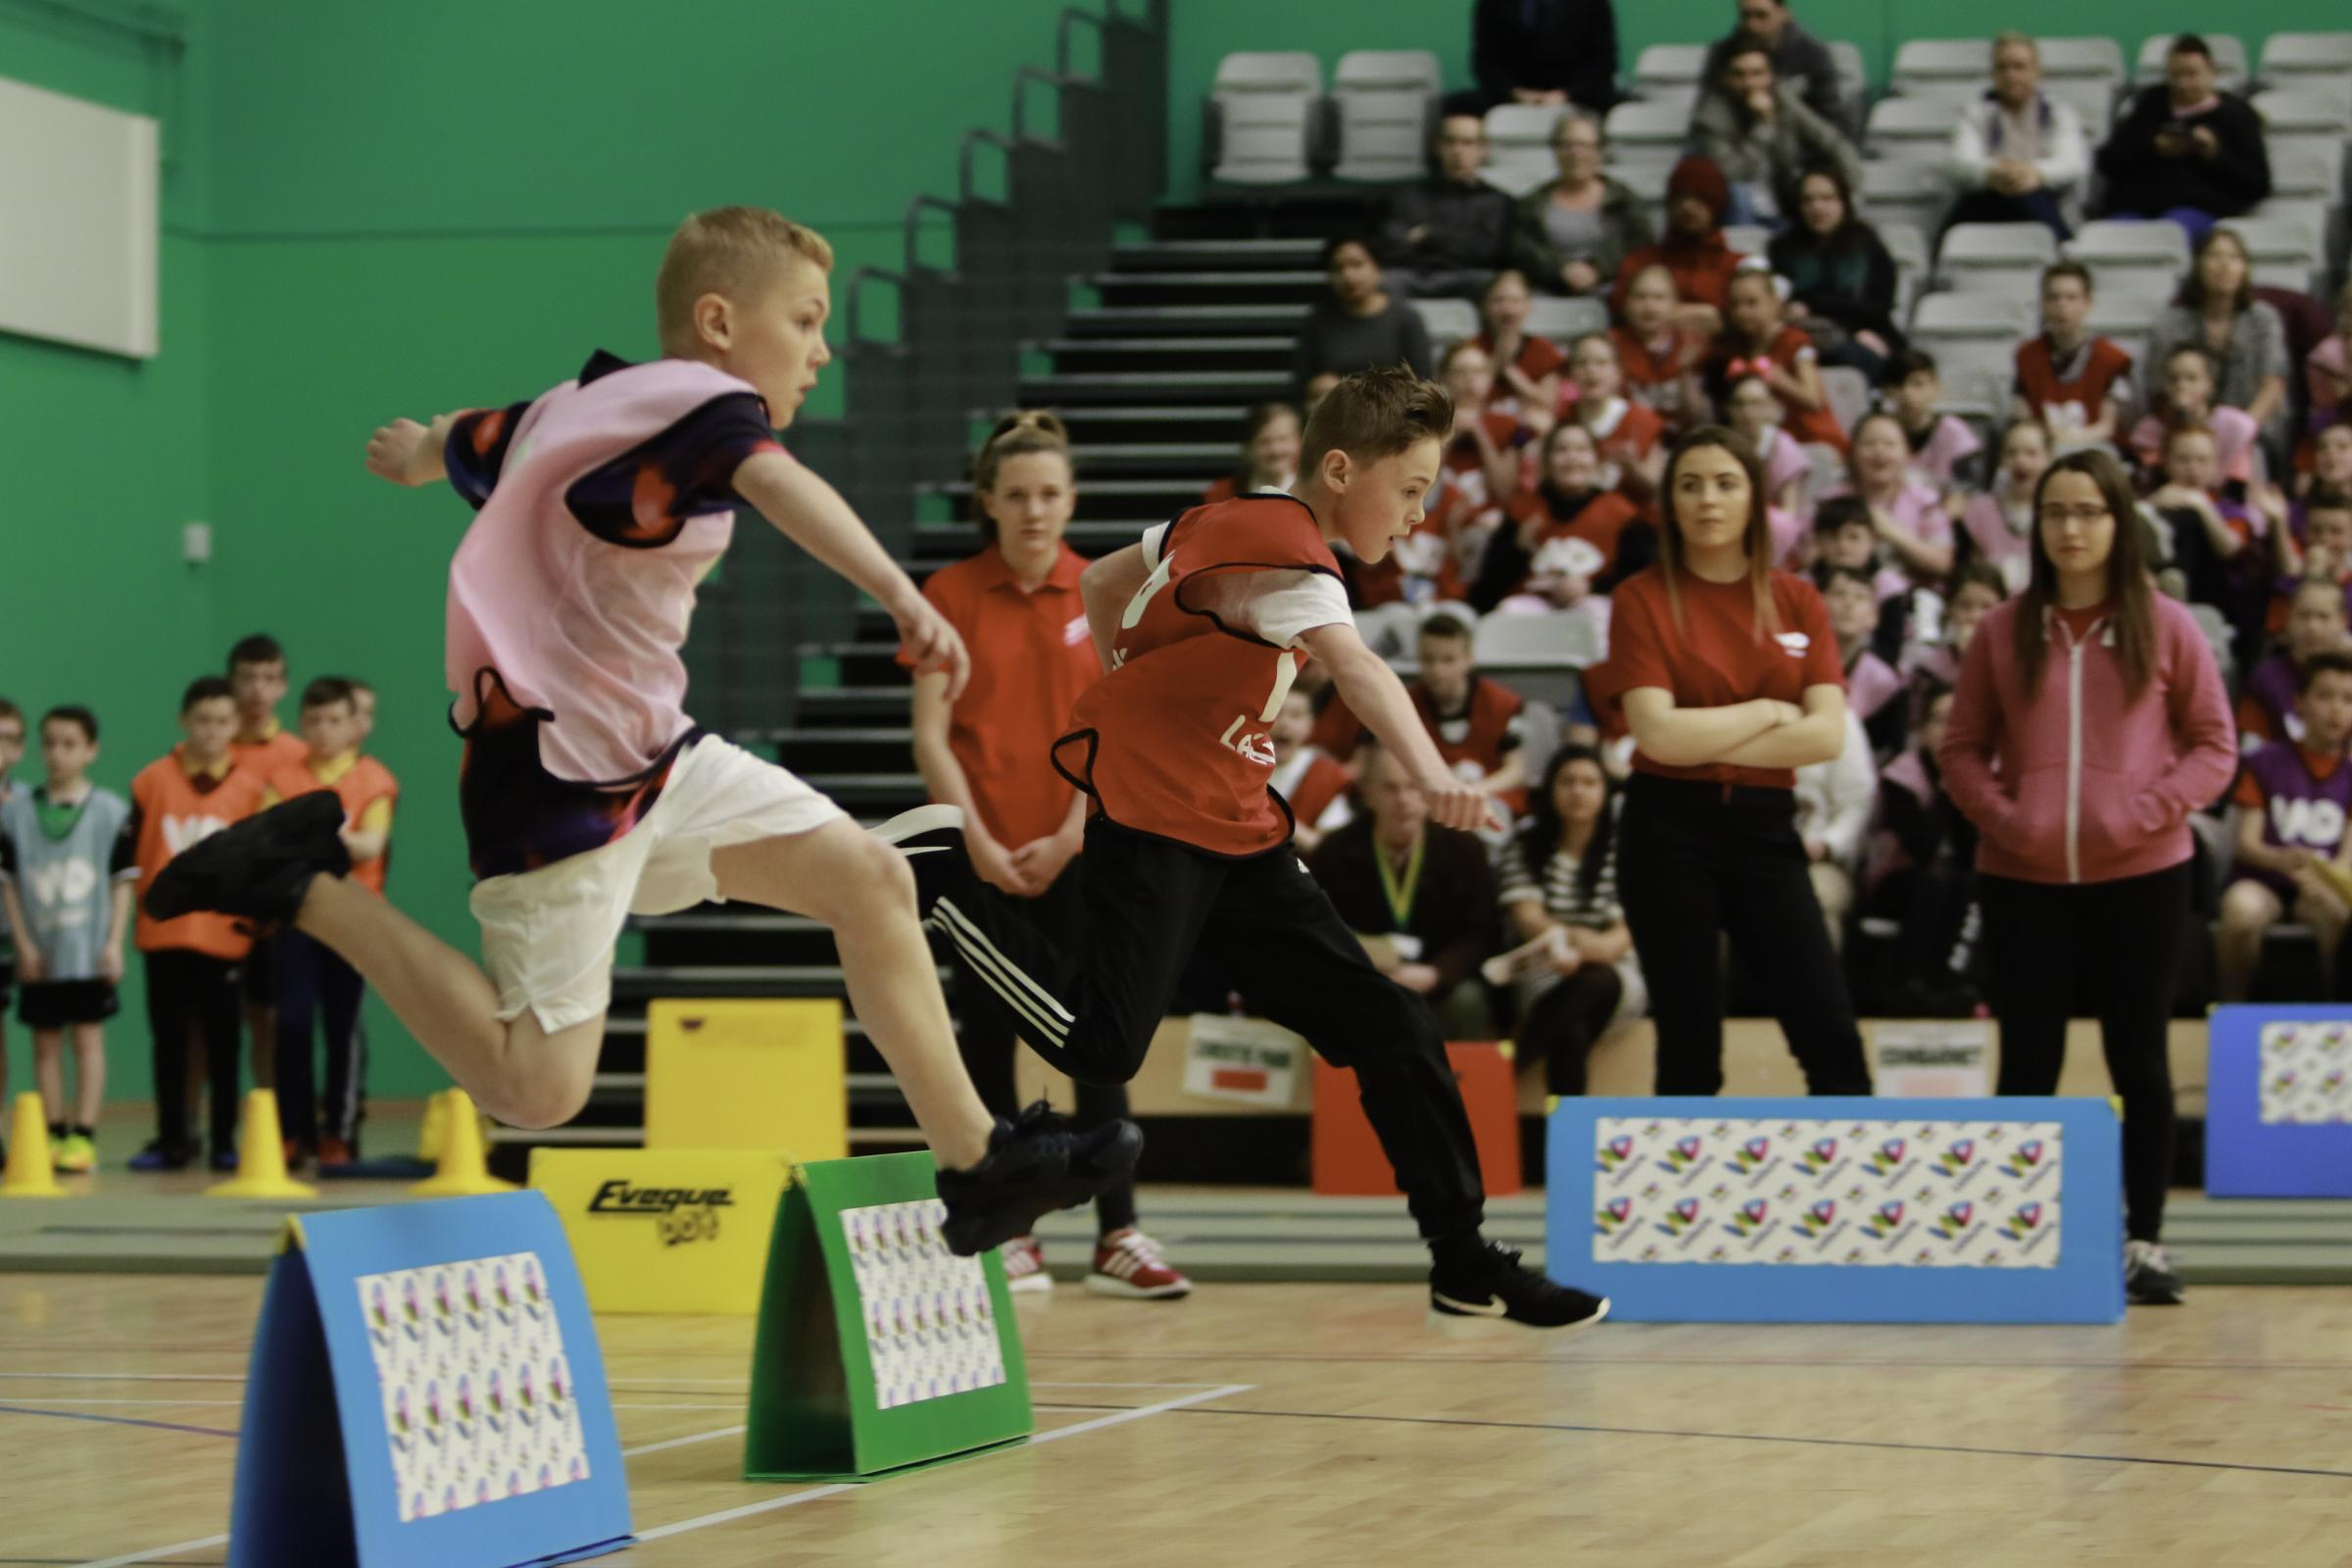 Taking part in sport 'is changing young lives', says new report